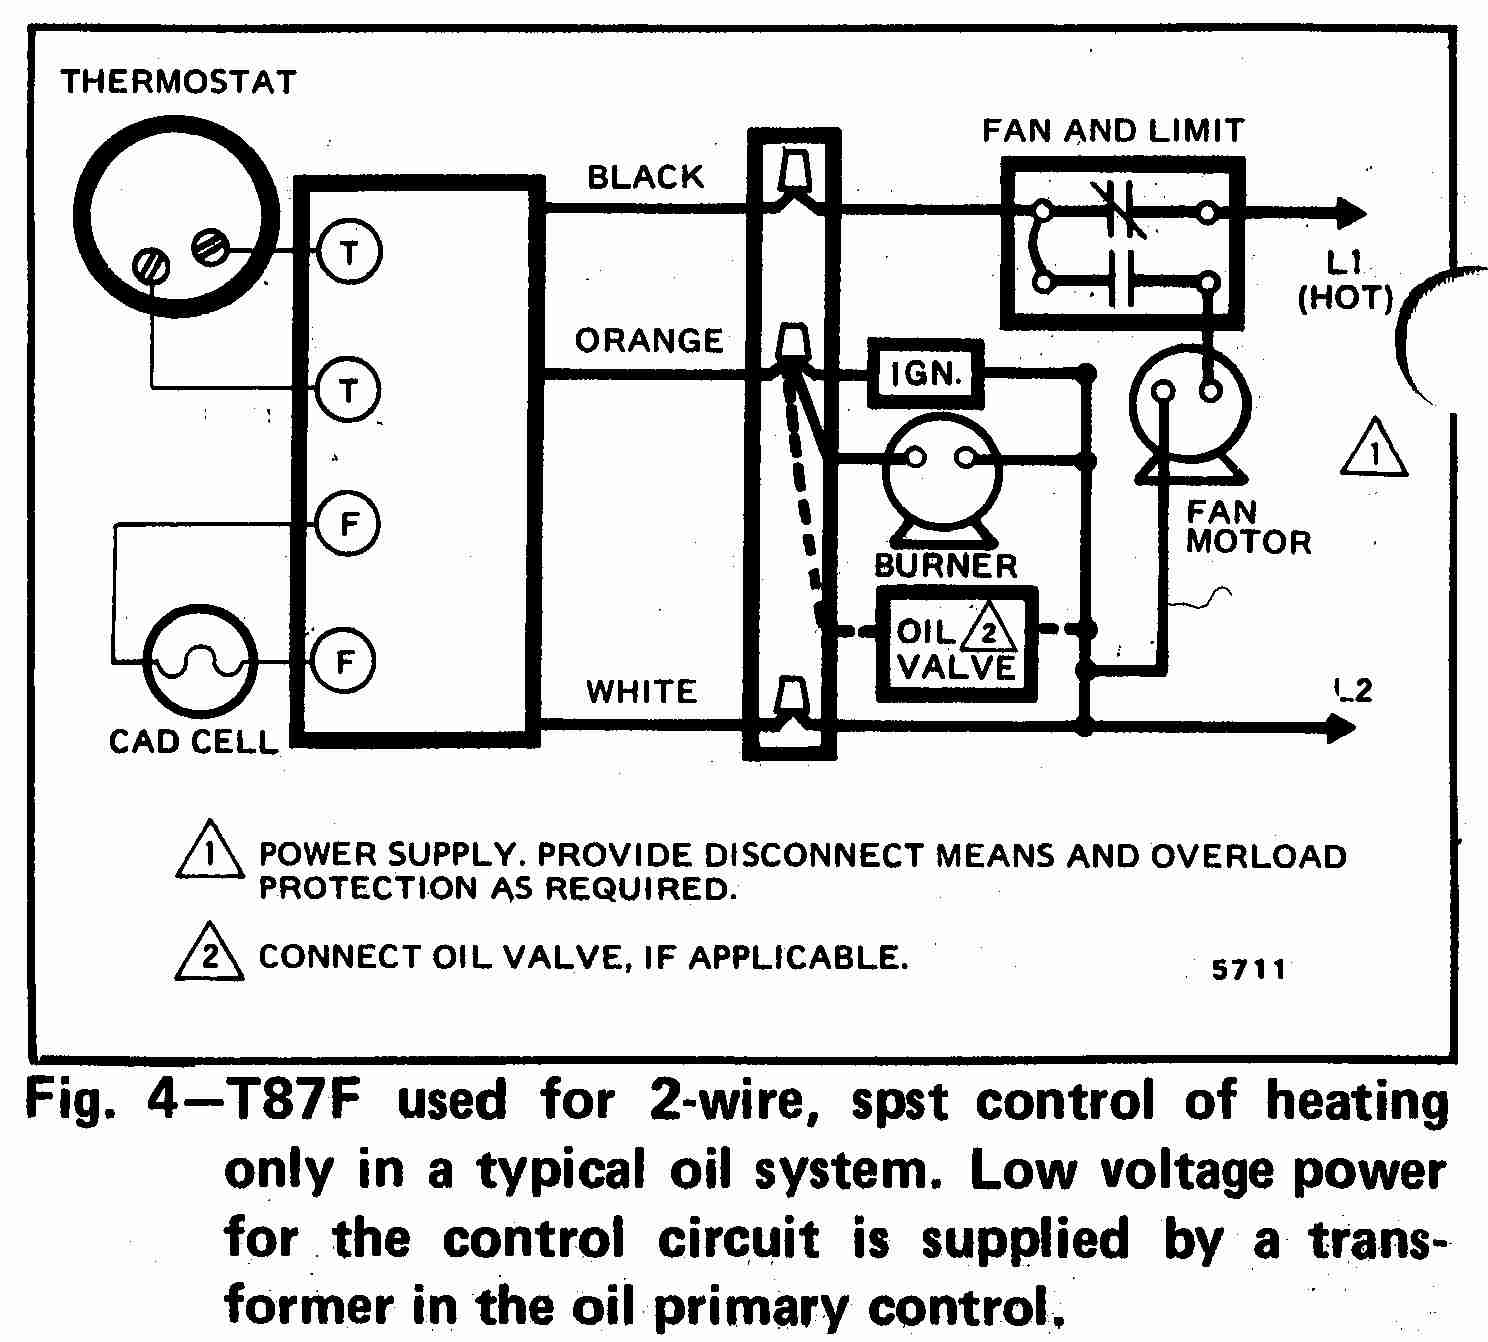 TT_T87F_0002_2W_DJF room thermostat wiring diagrams for hvac systems honeywell wiring diagram thermostat at bakdesigns.co